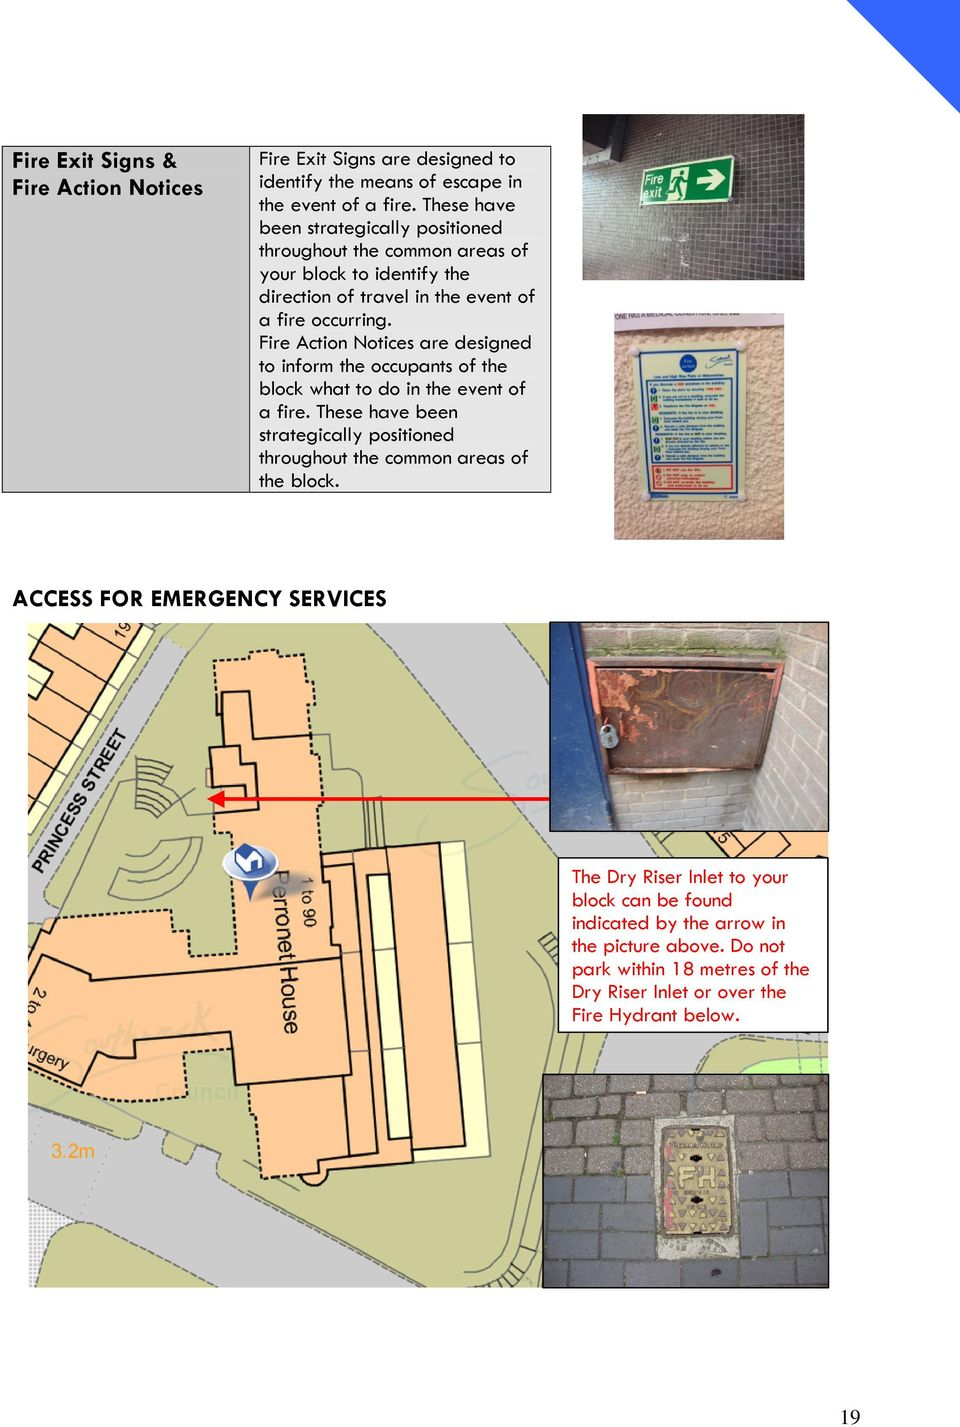 Fire Action Notices are designed to inform the occupants of the block what to do in the event of a fire.